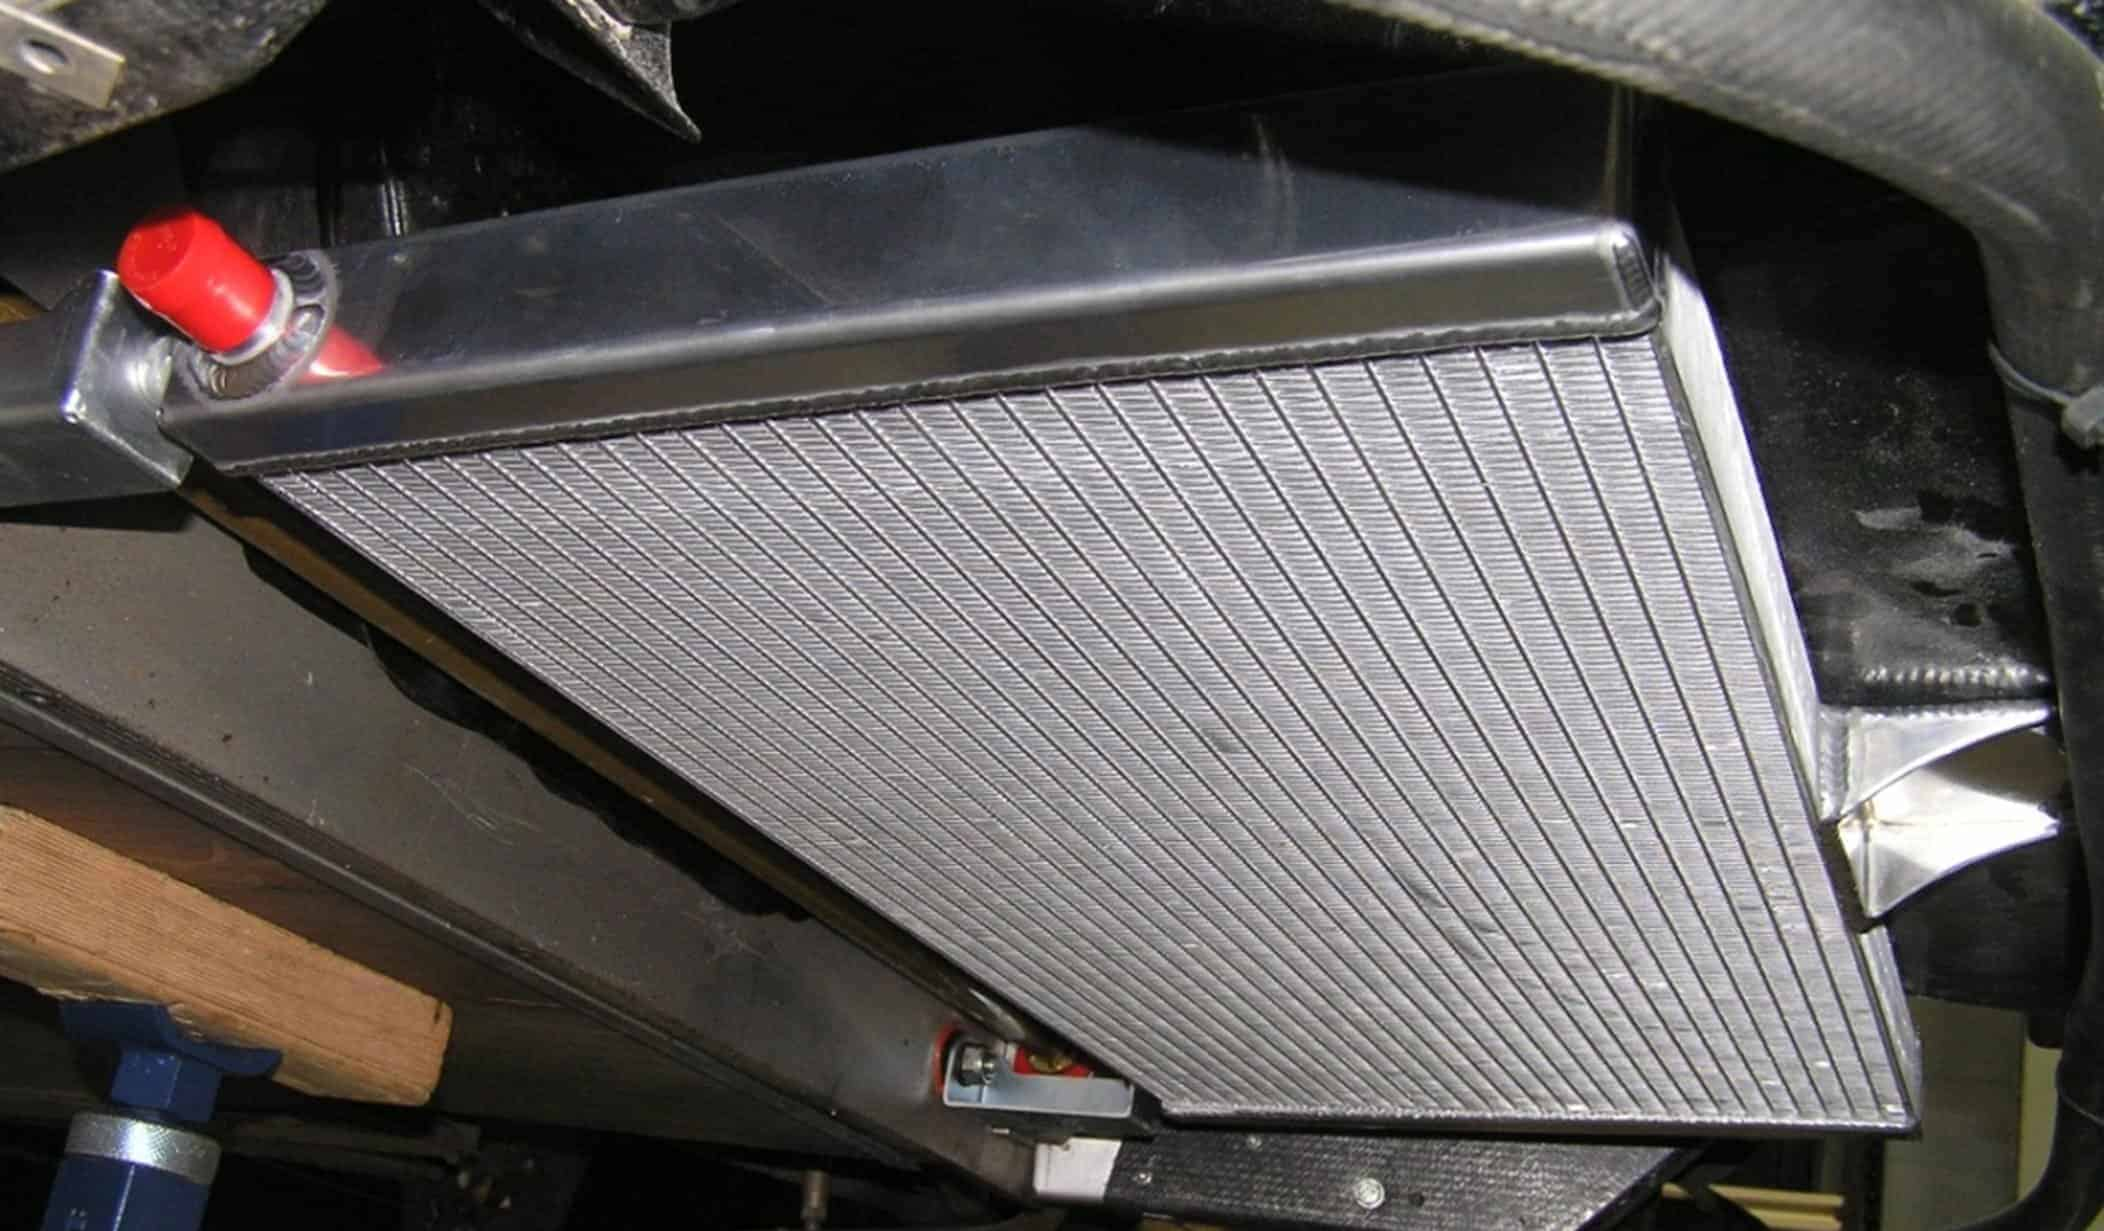 CC Radiator mounted to an Elise or Exige